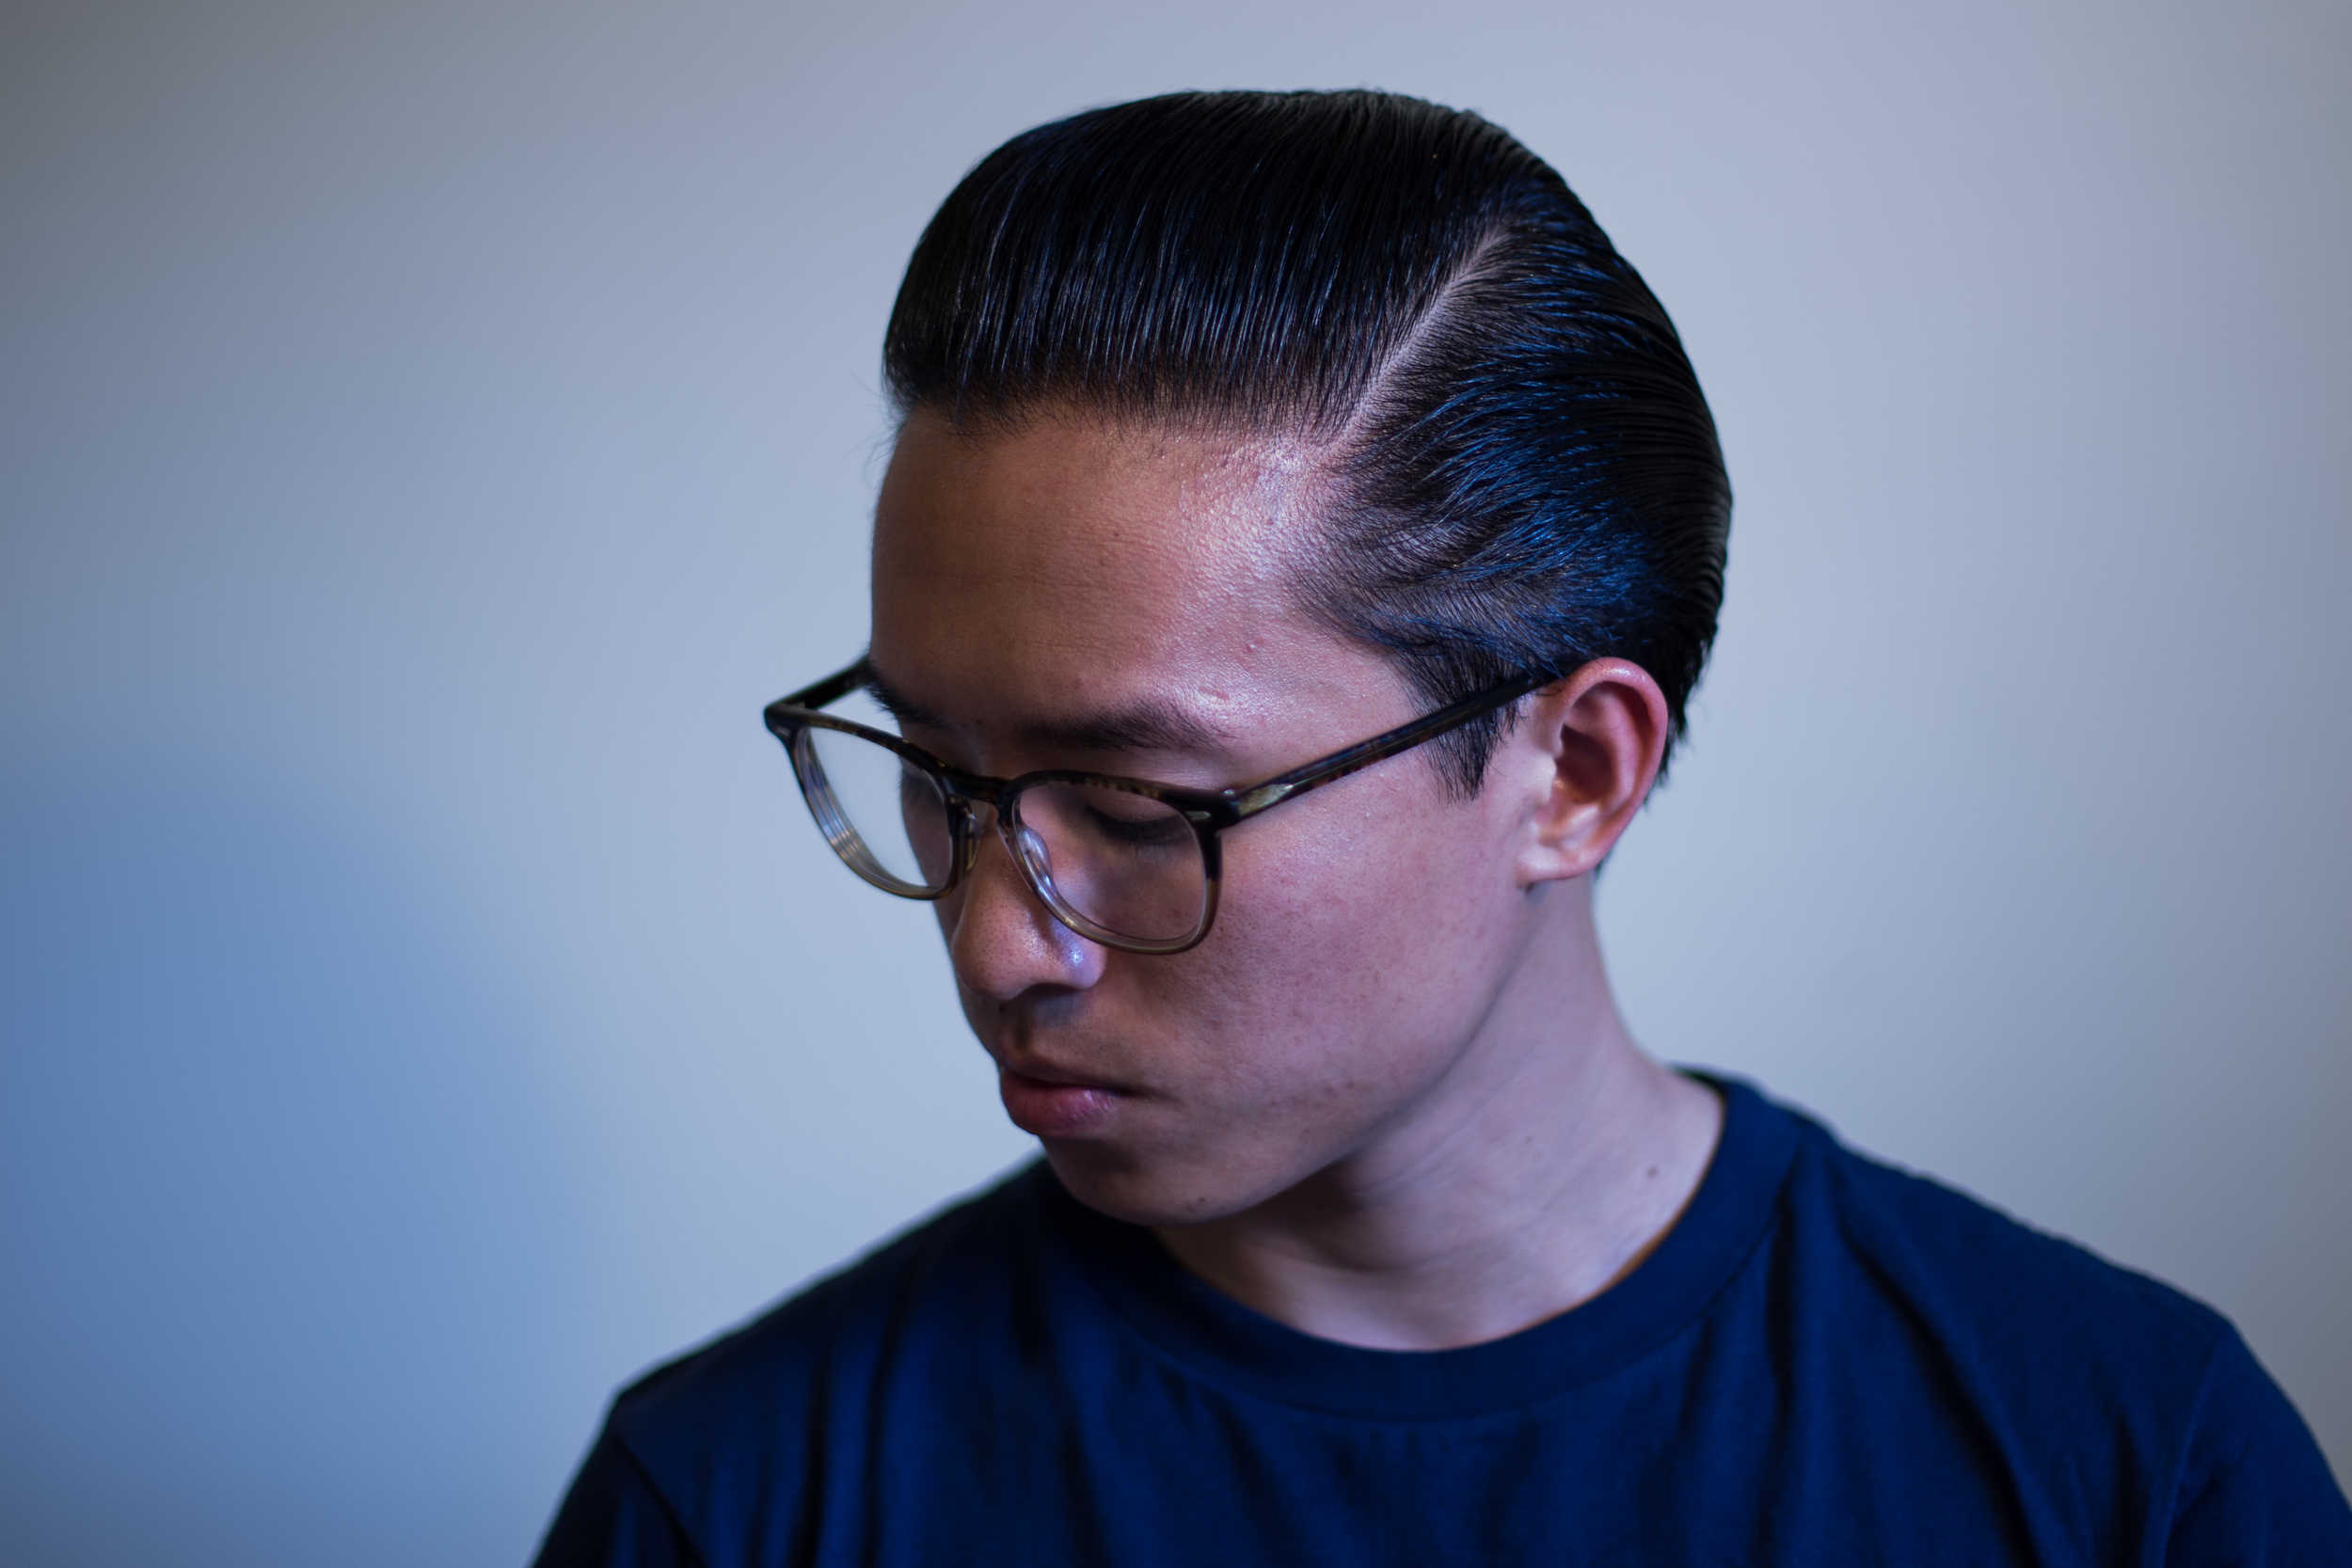 Mr. Ducktail Pomade part